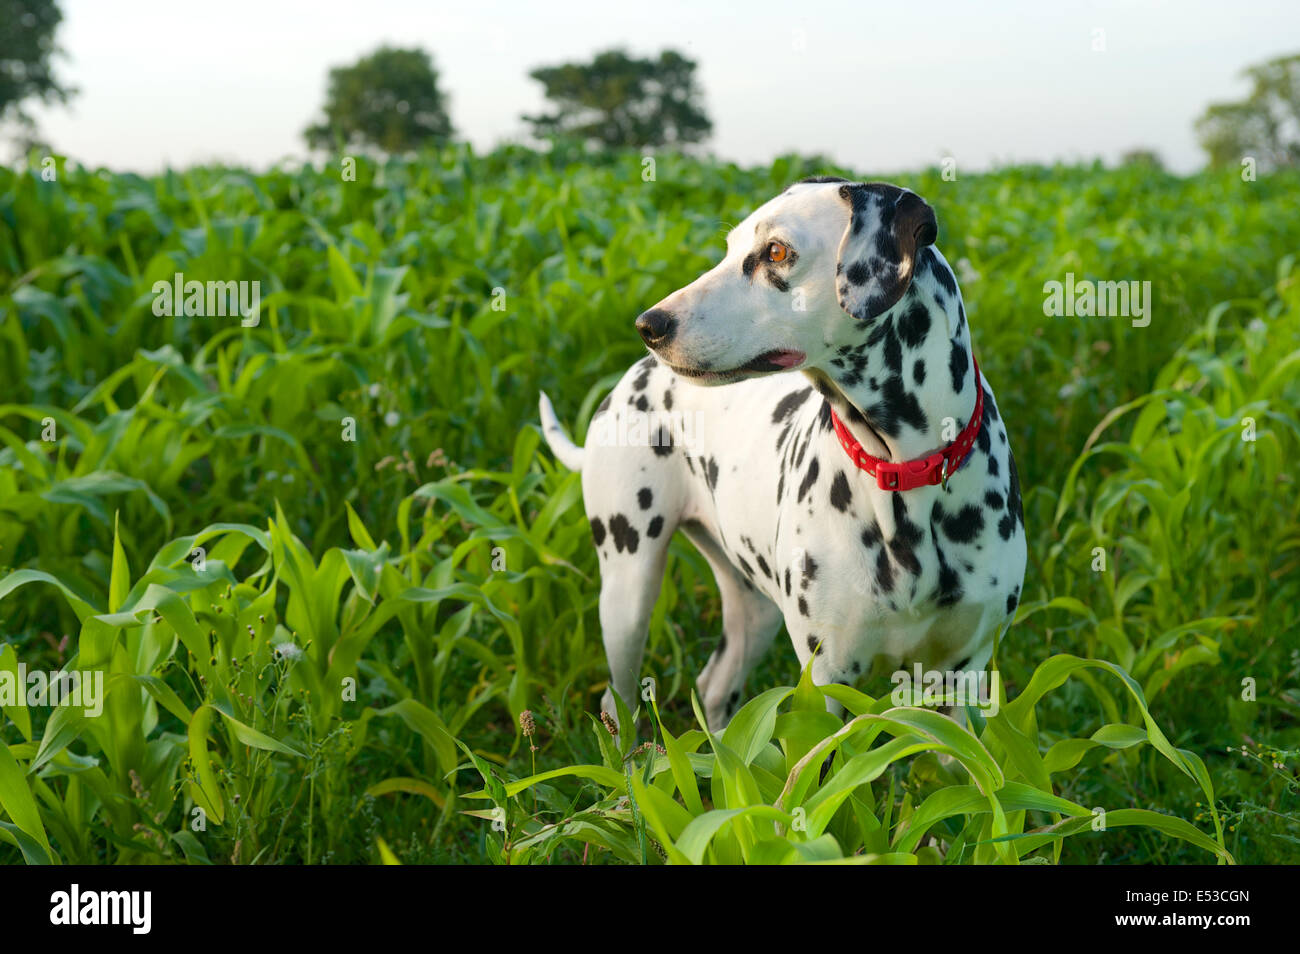 A Dalmatian dog is a very active breed. - Stock Image